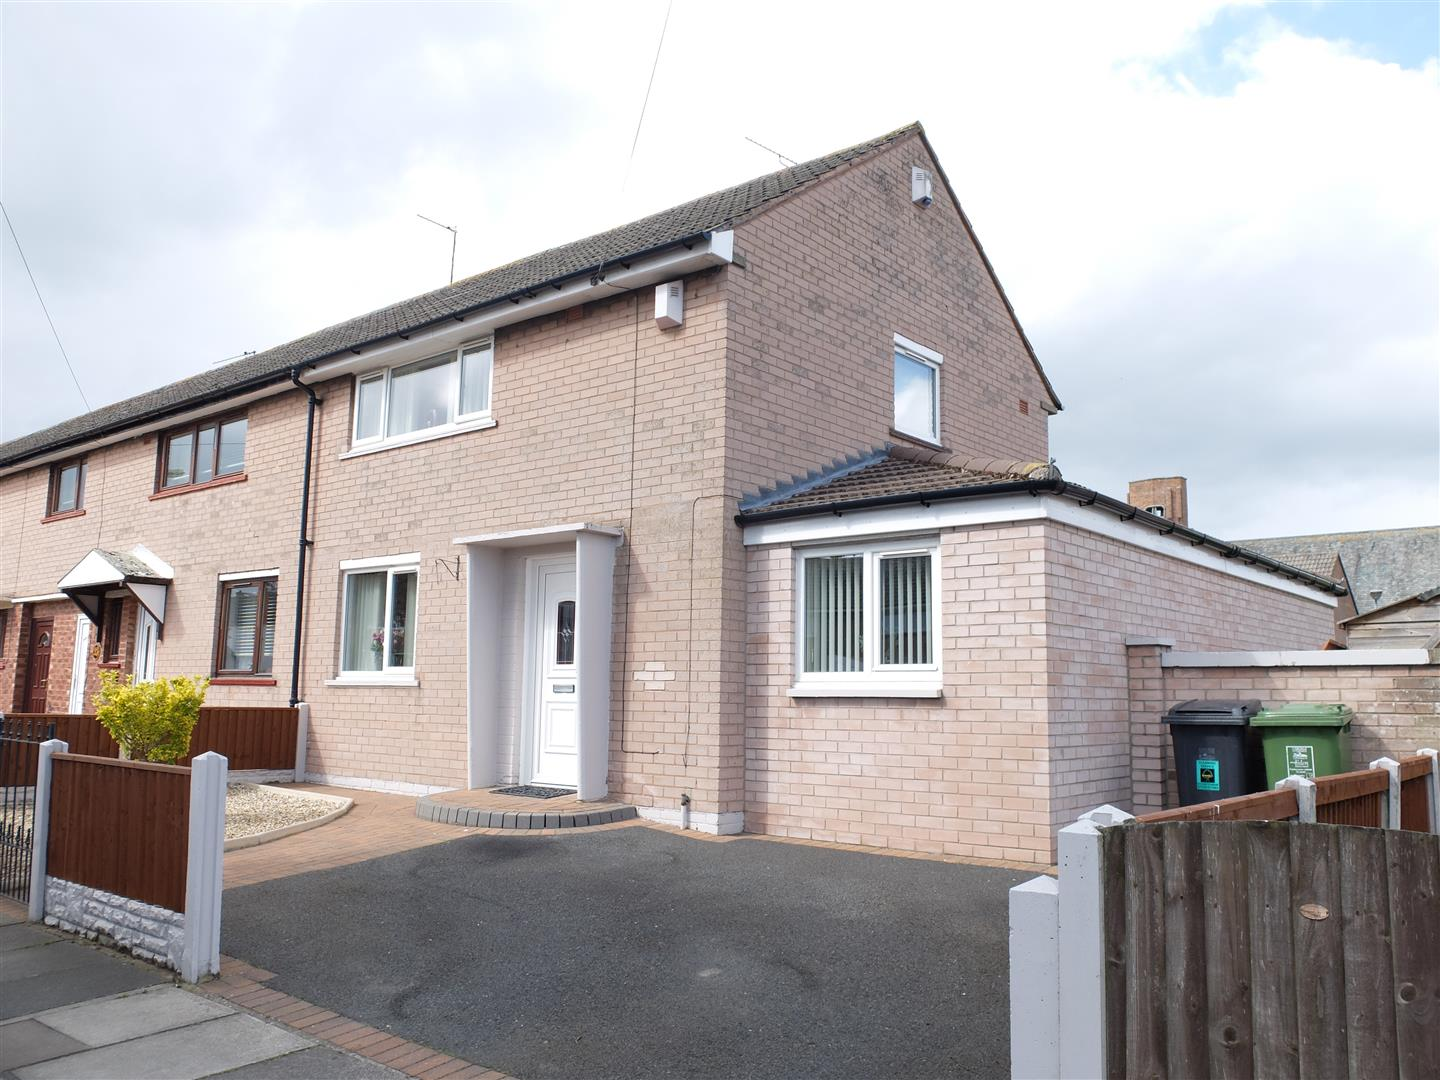 25 Lowther Browns Lonning Carlisle 3 Bedrooms House - End Terrace For Sale